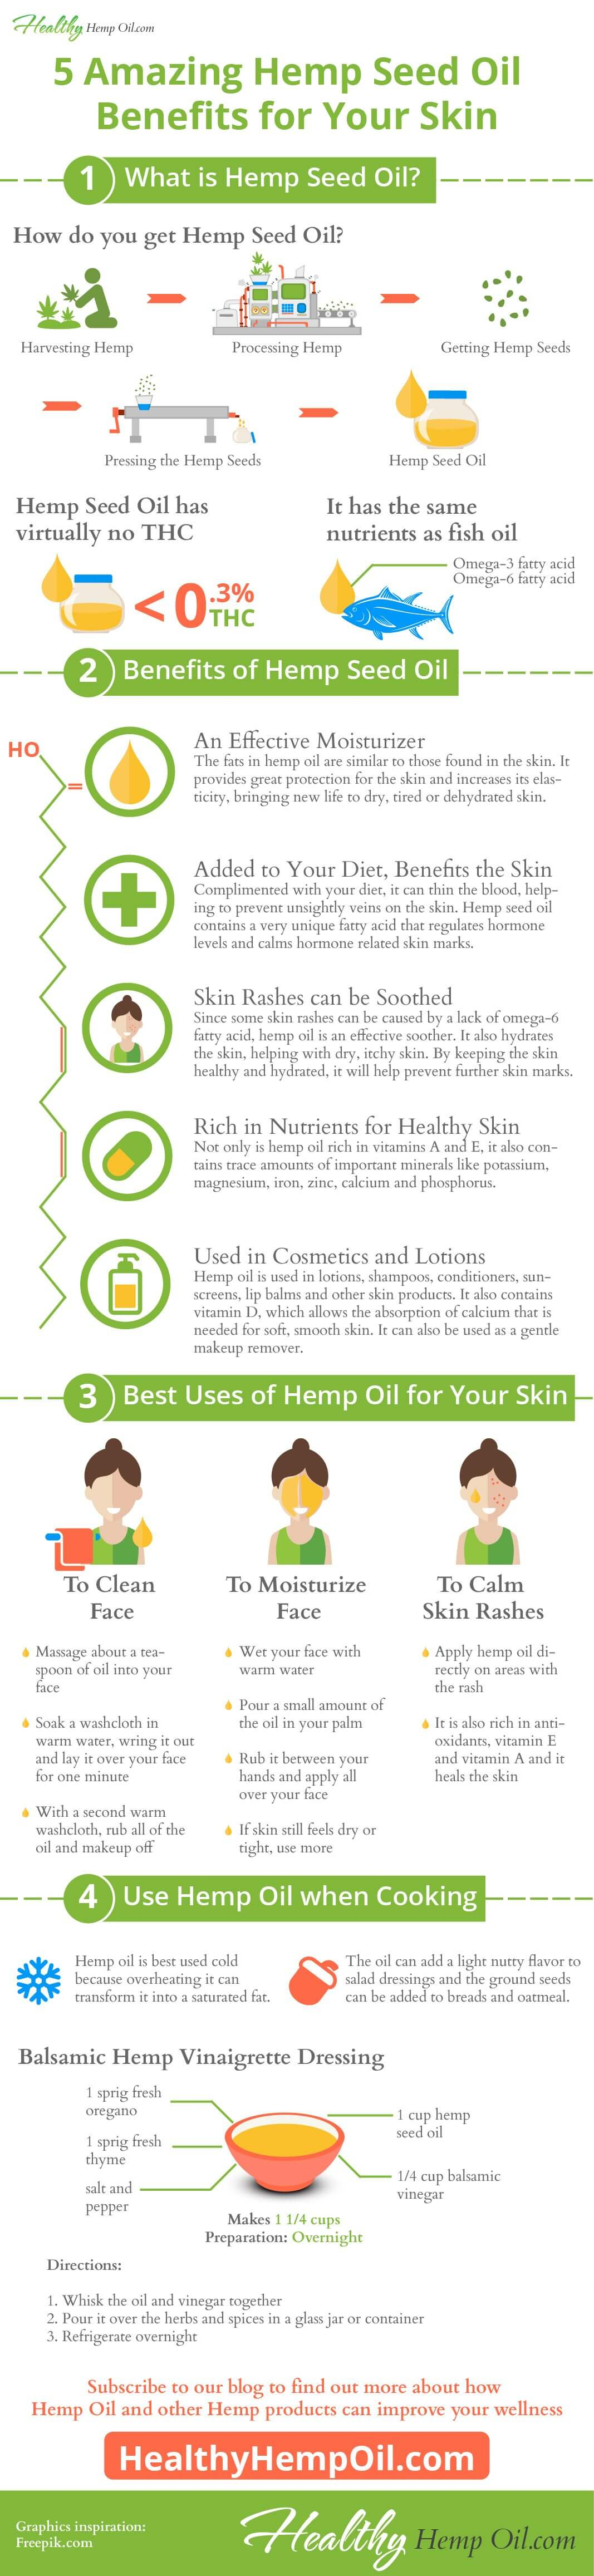 Hemp Oil Benefits For Skin Maintain Healthy Skin Healthy Hemp Oil